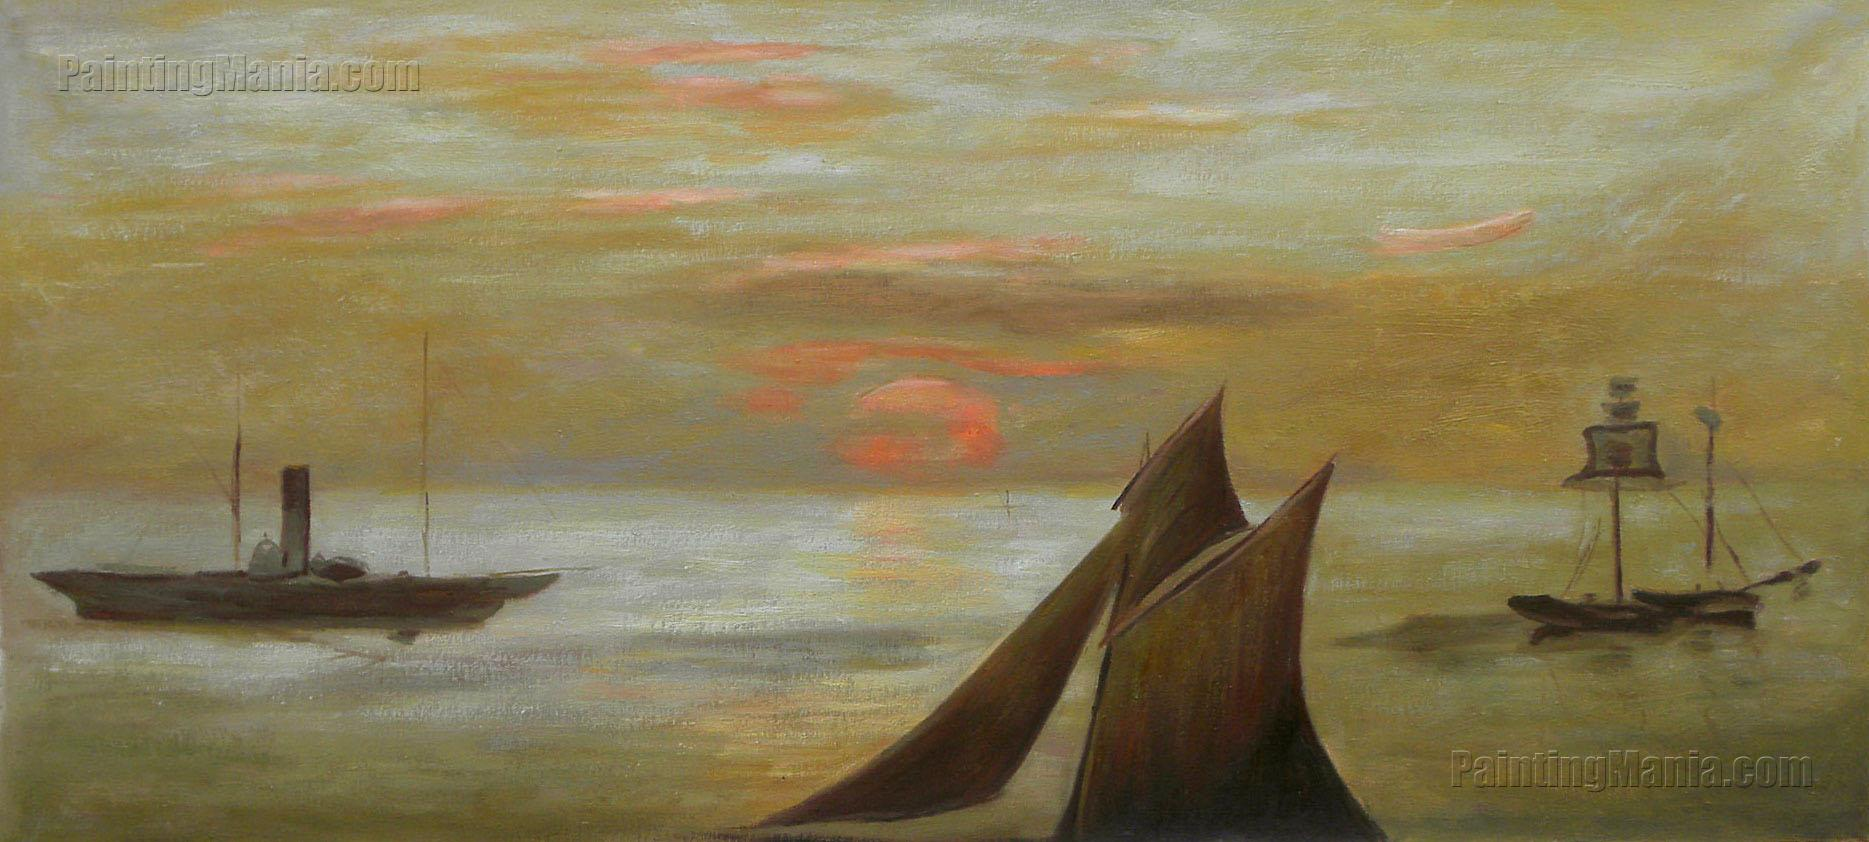 Boats at Sea, Sunset